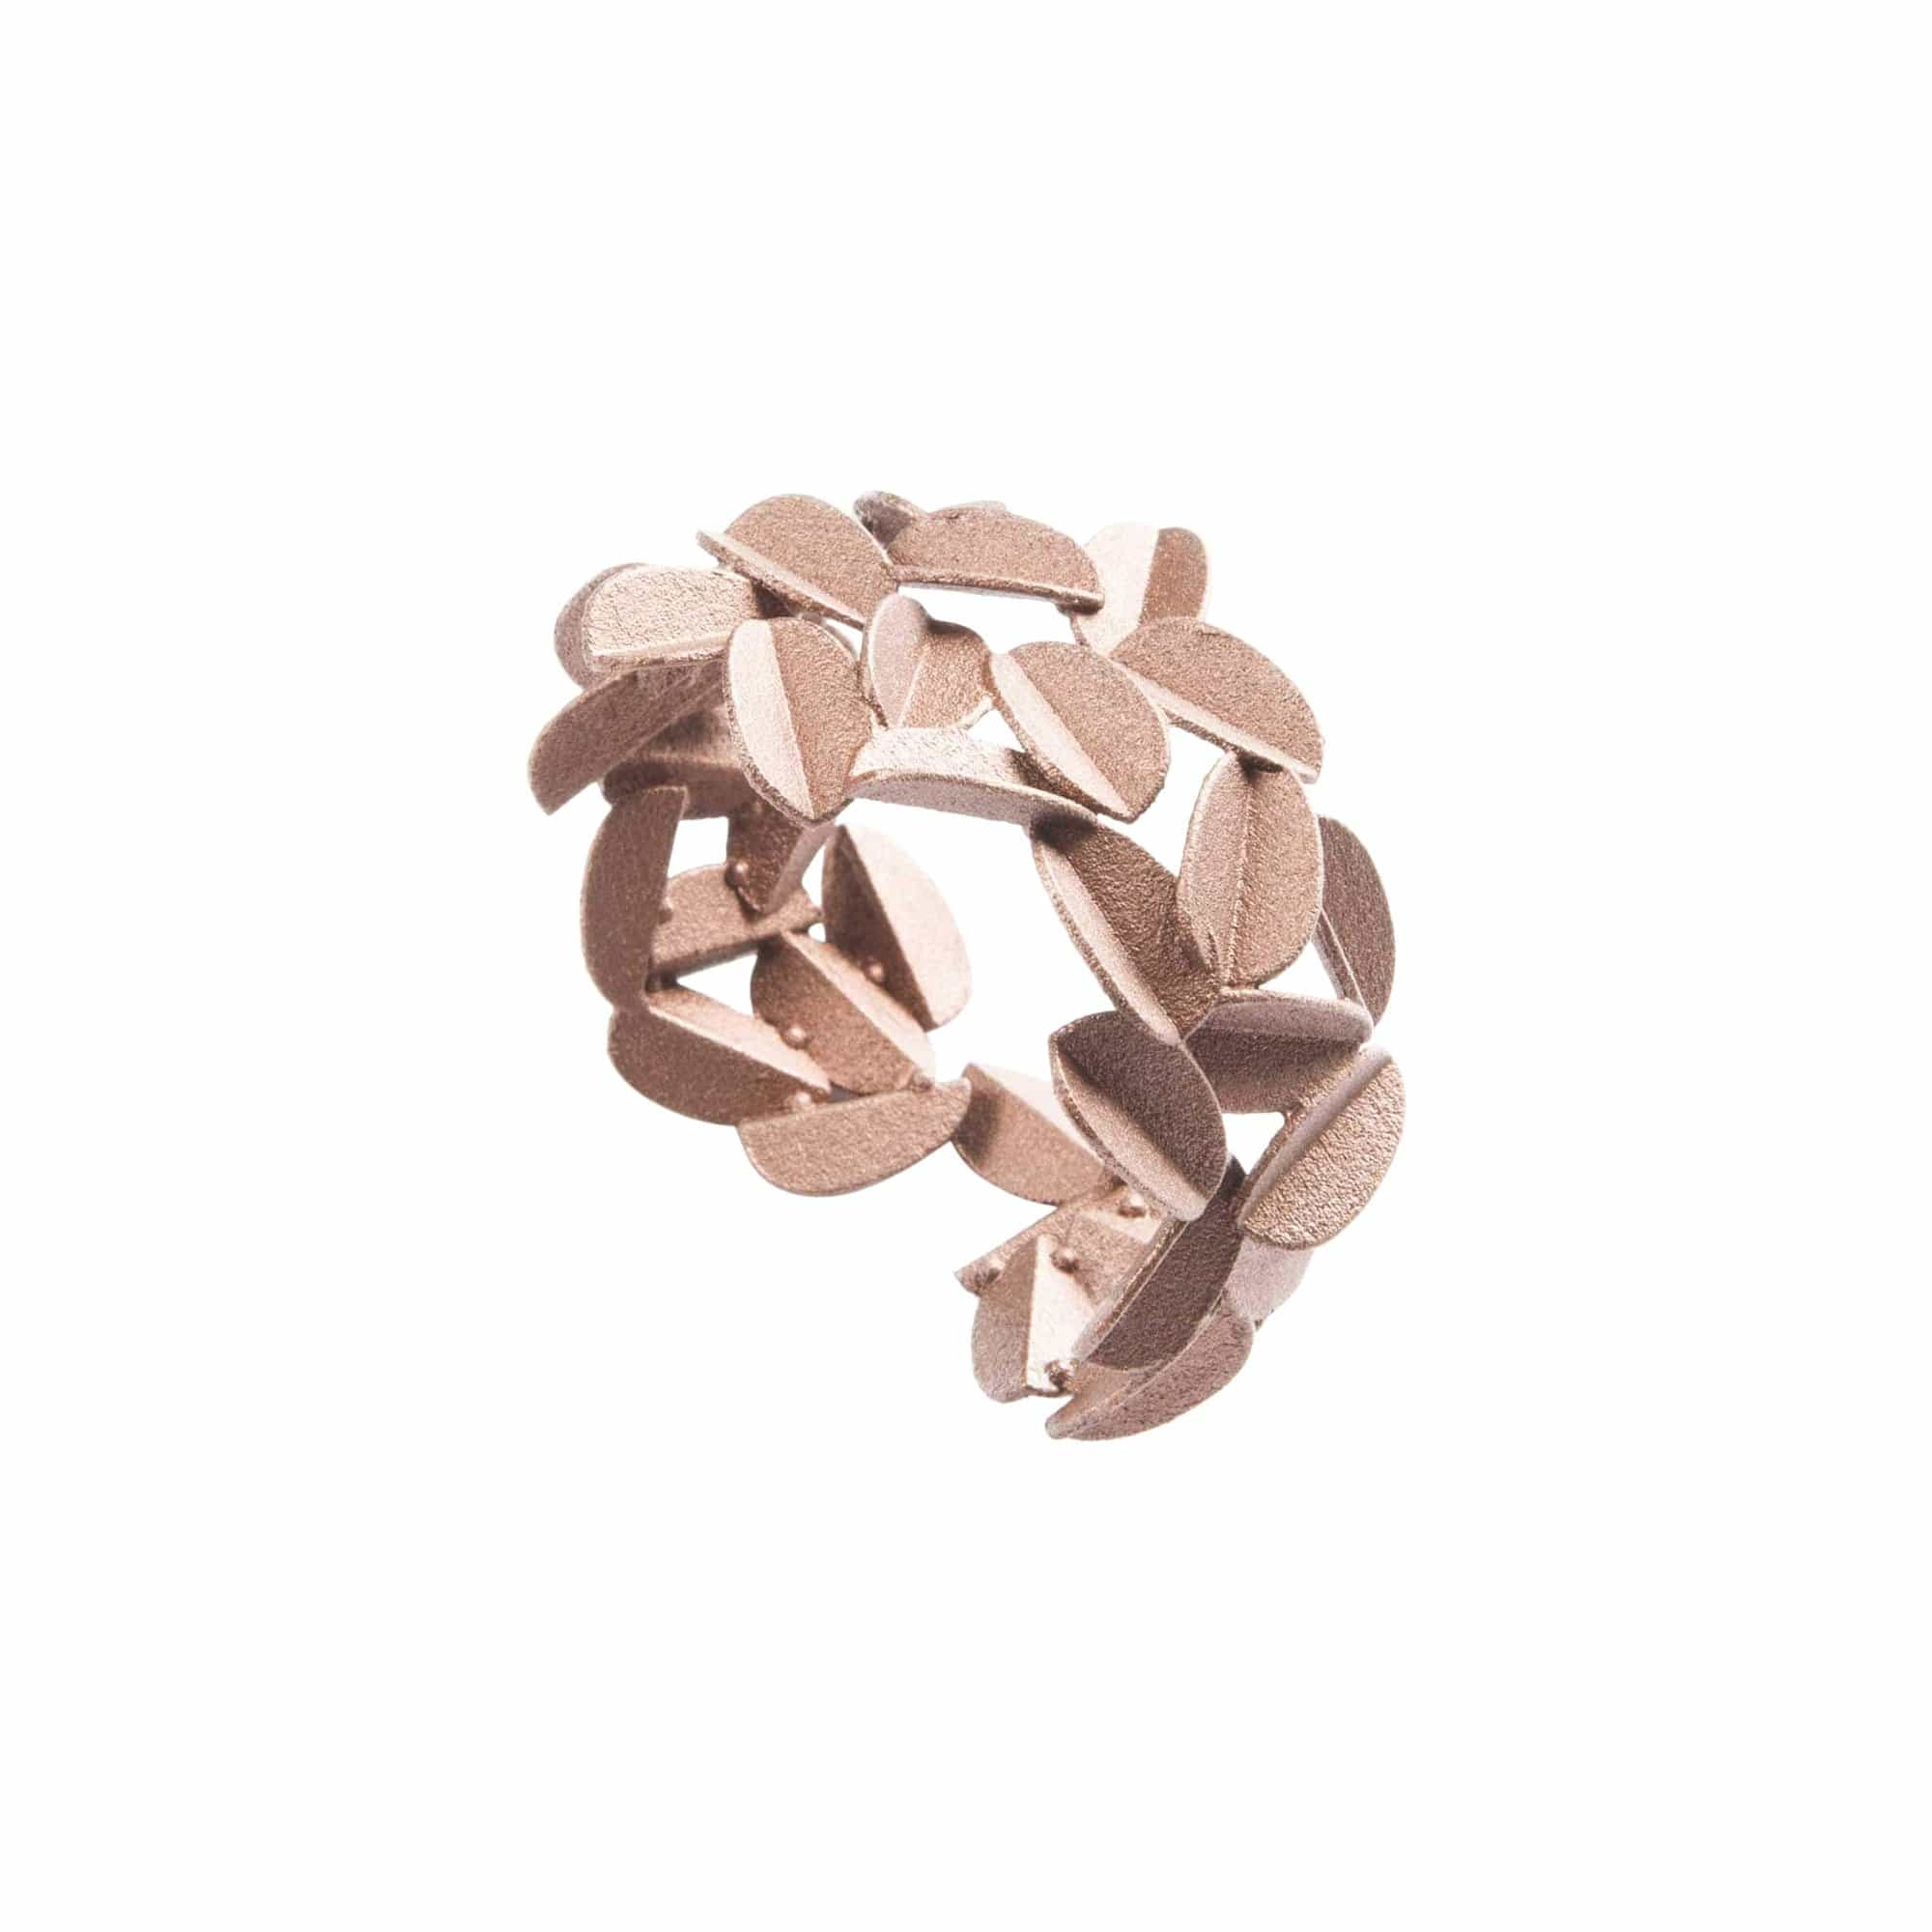 maison 203 Bracelets Rose Gold Metallic Leaves Bracelet